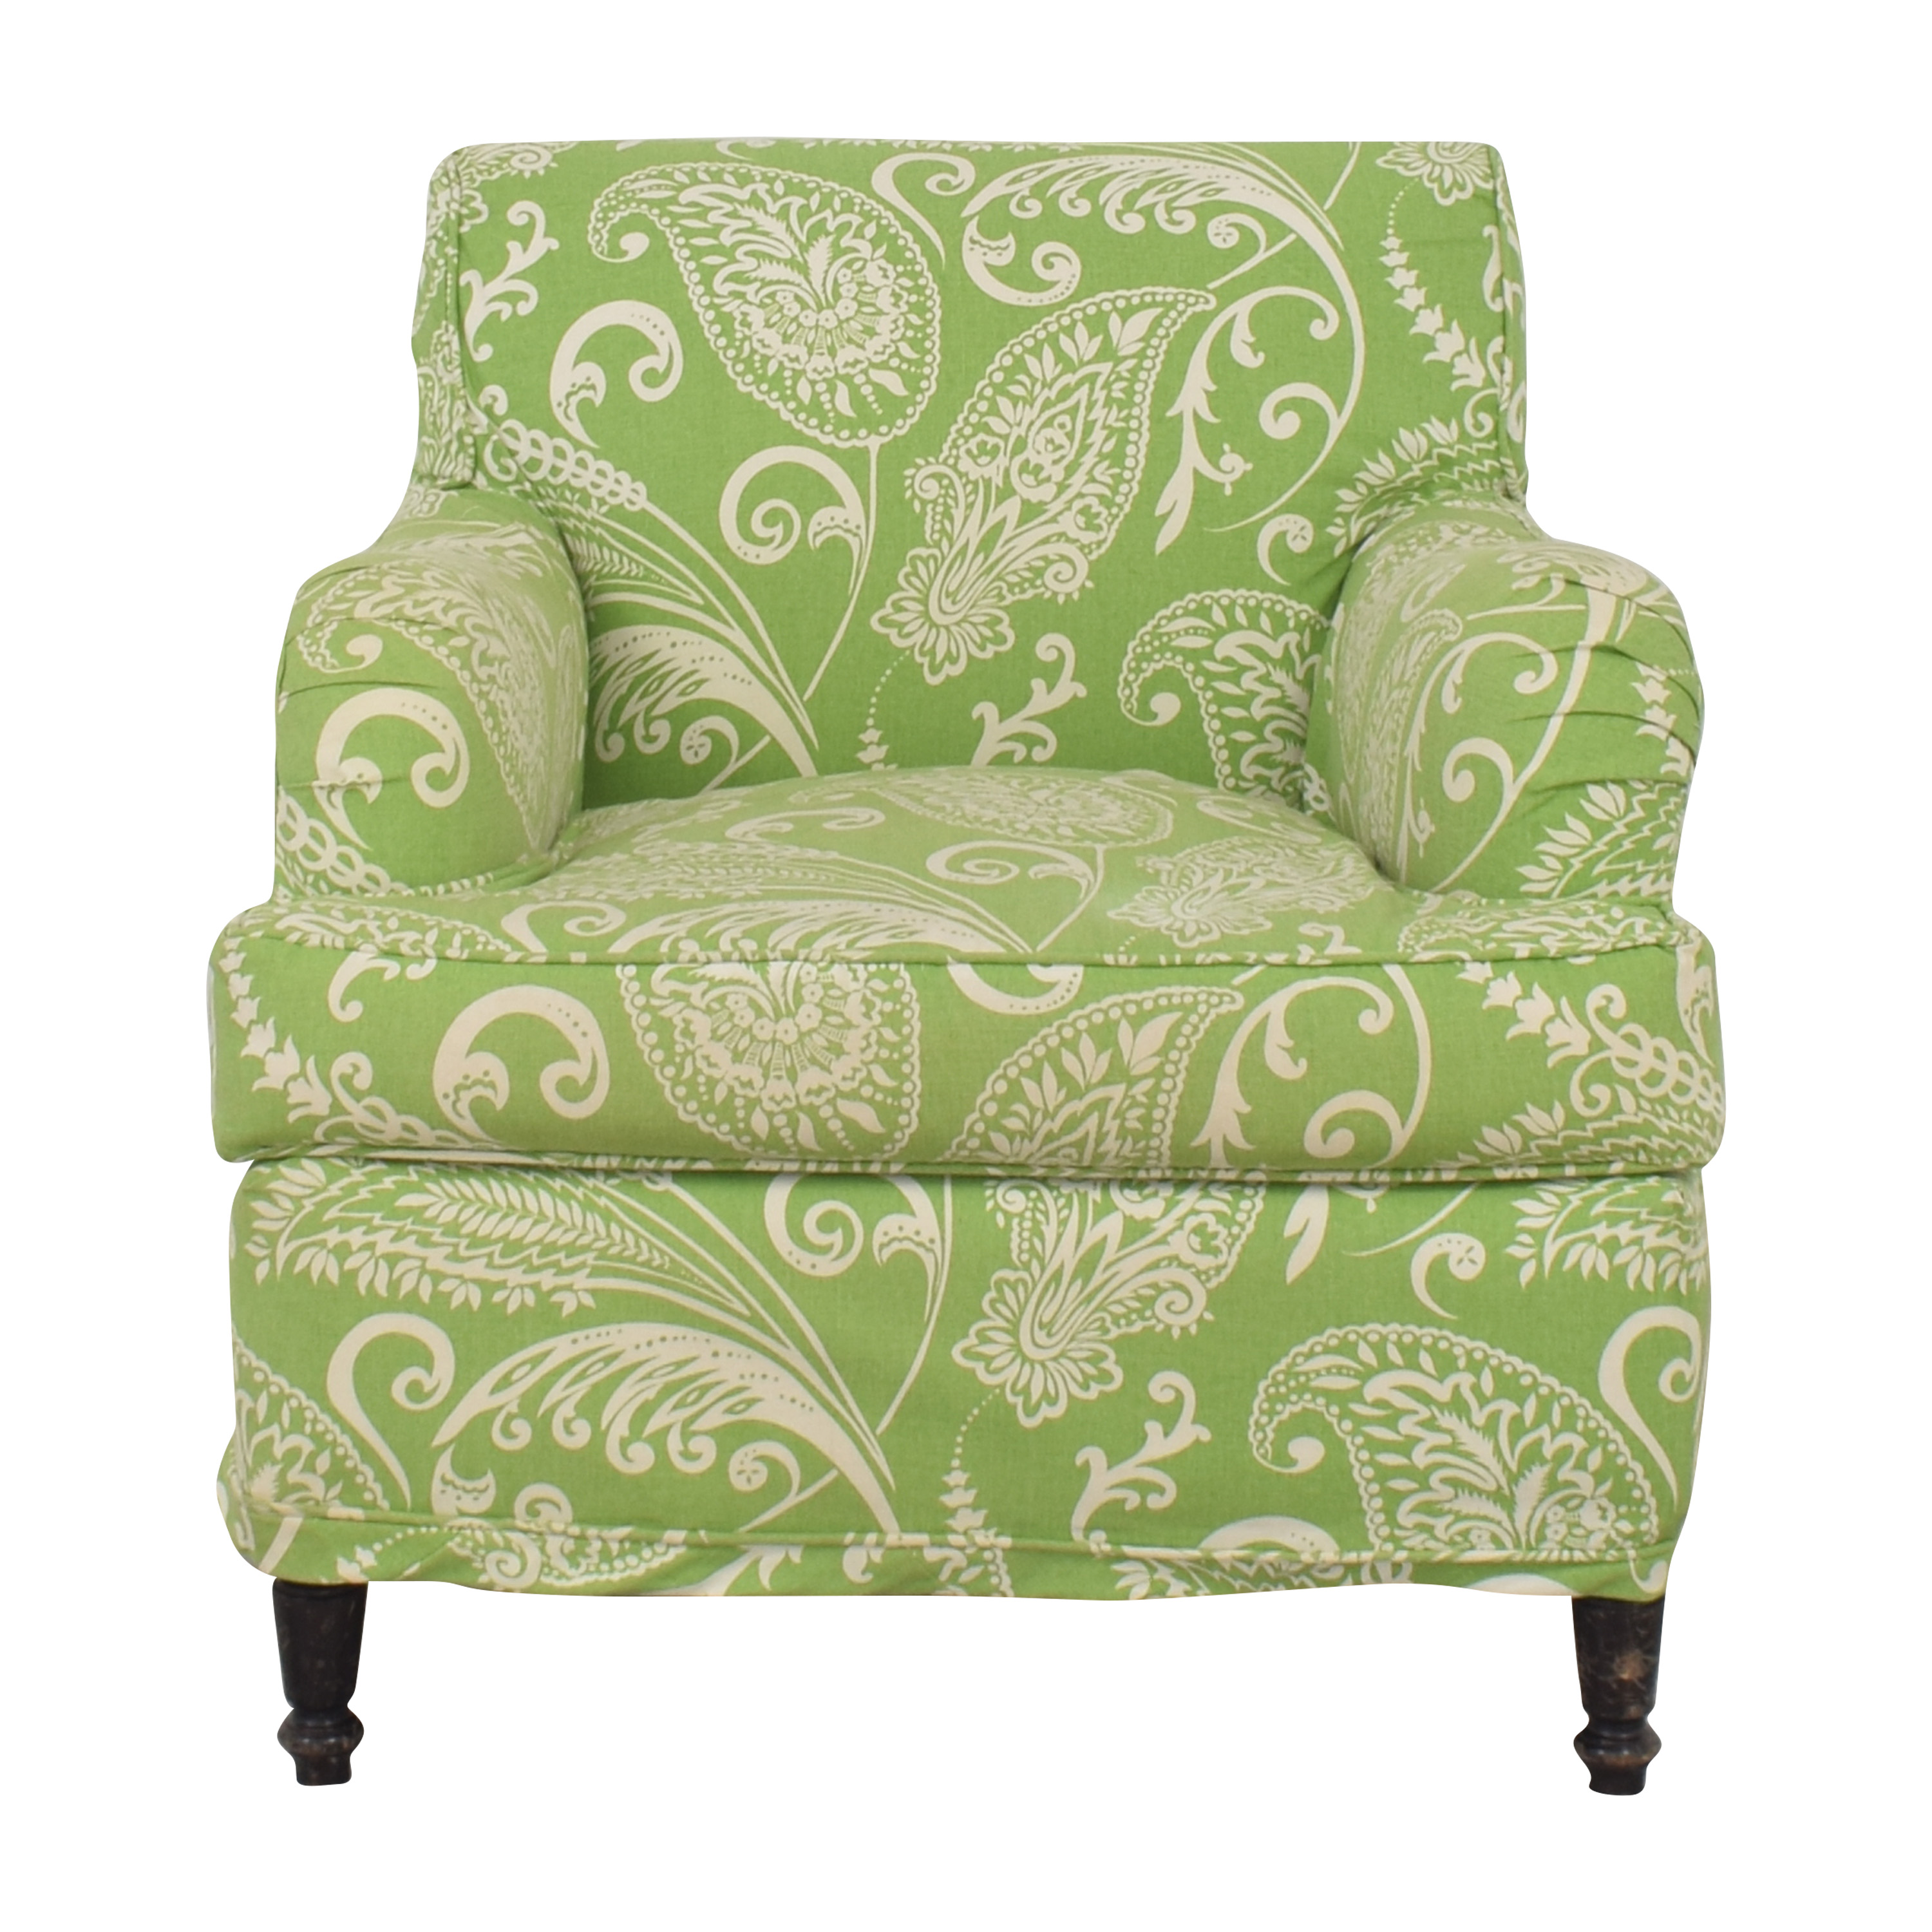 Cisco Brothers Cisco Brothers Upholstered Armchair used